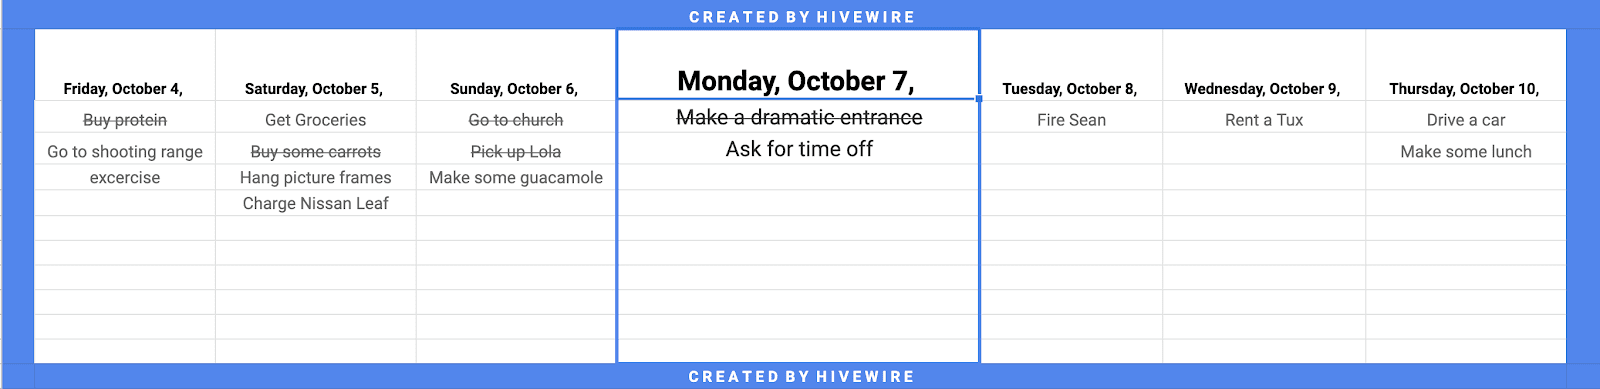 A day planner template helps you efficiently plan, organize, and schedule important tasks to maximize productivity. Hivewire